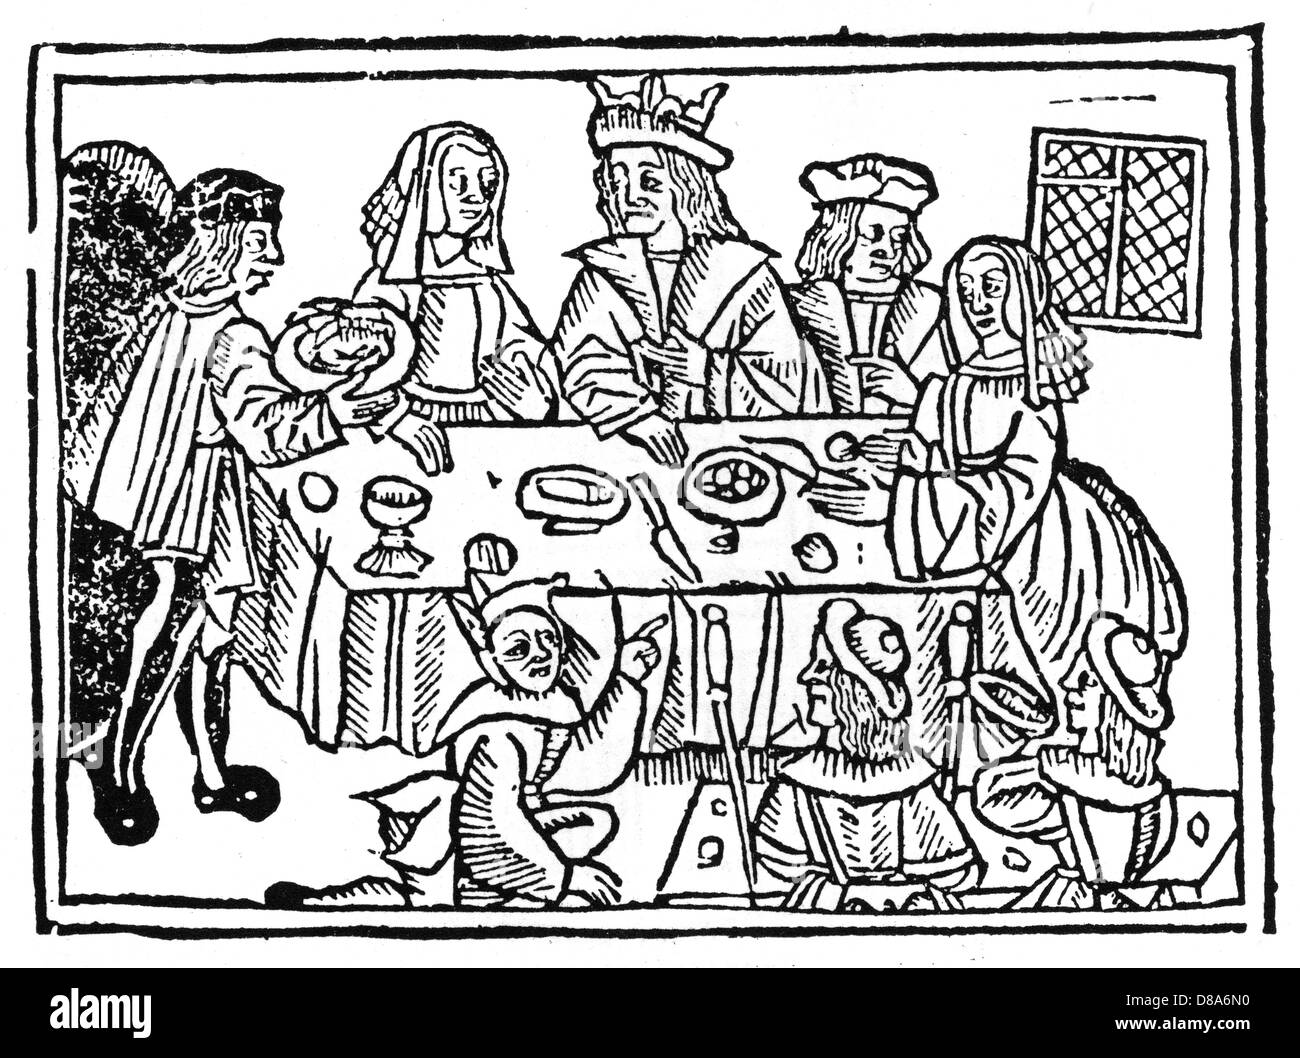 A King At Table - Stock Image